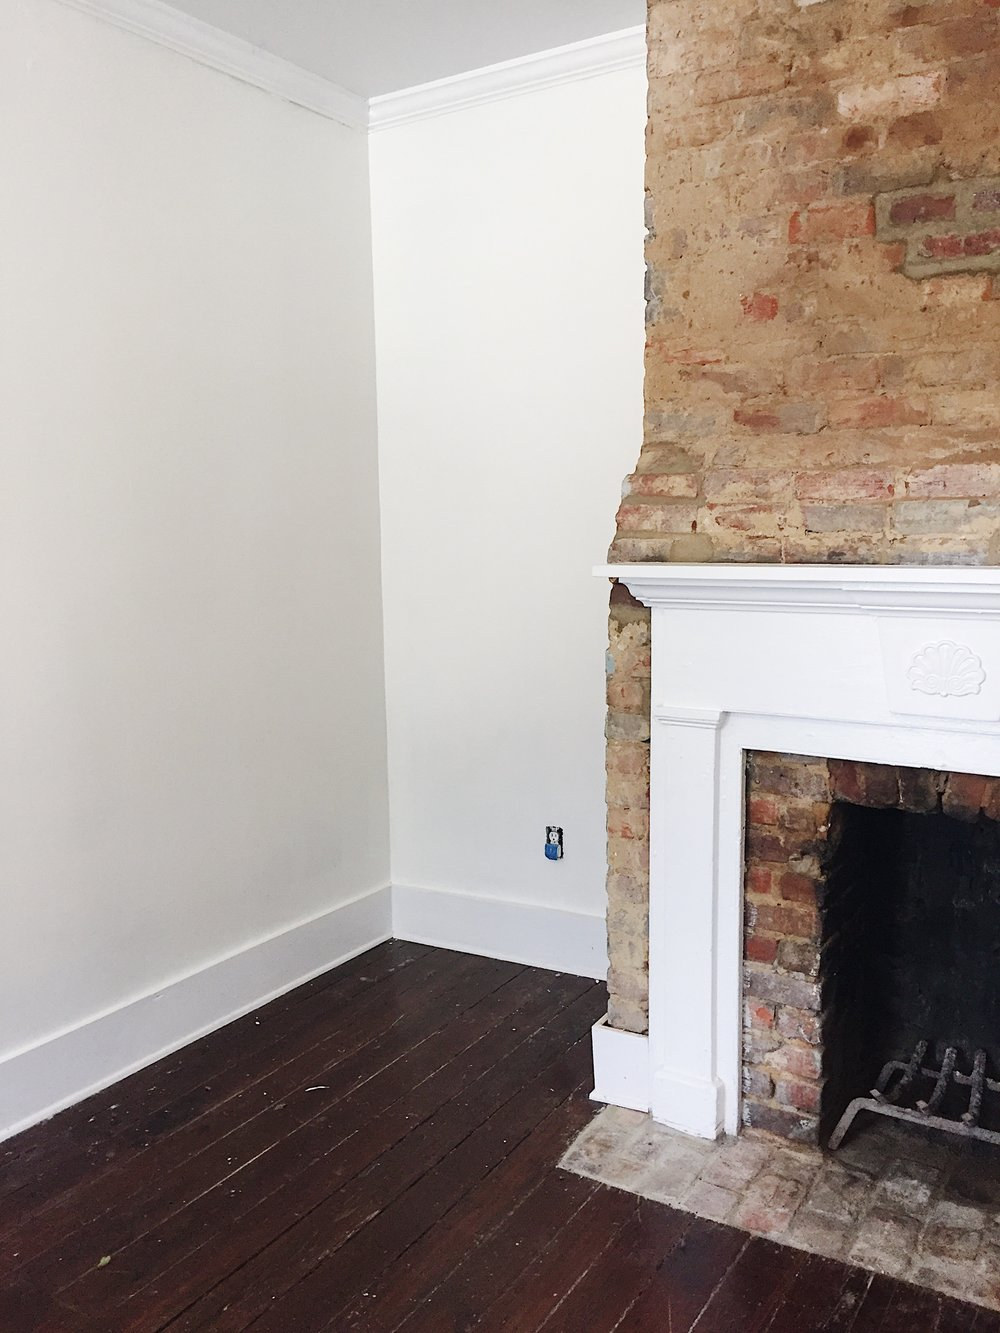 Charleston_south_carolina_exposed_fireplace_historic_home_bedroom_renovation_fireplace_mantle_1.JPG